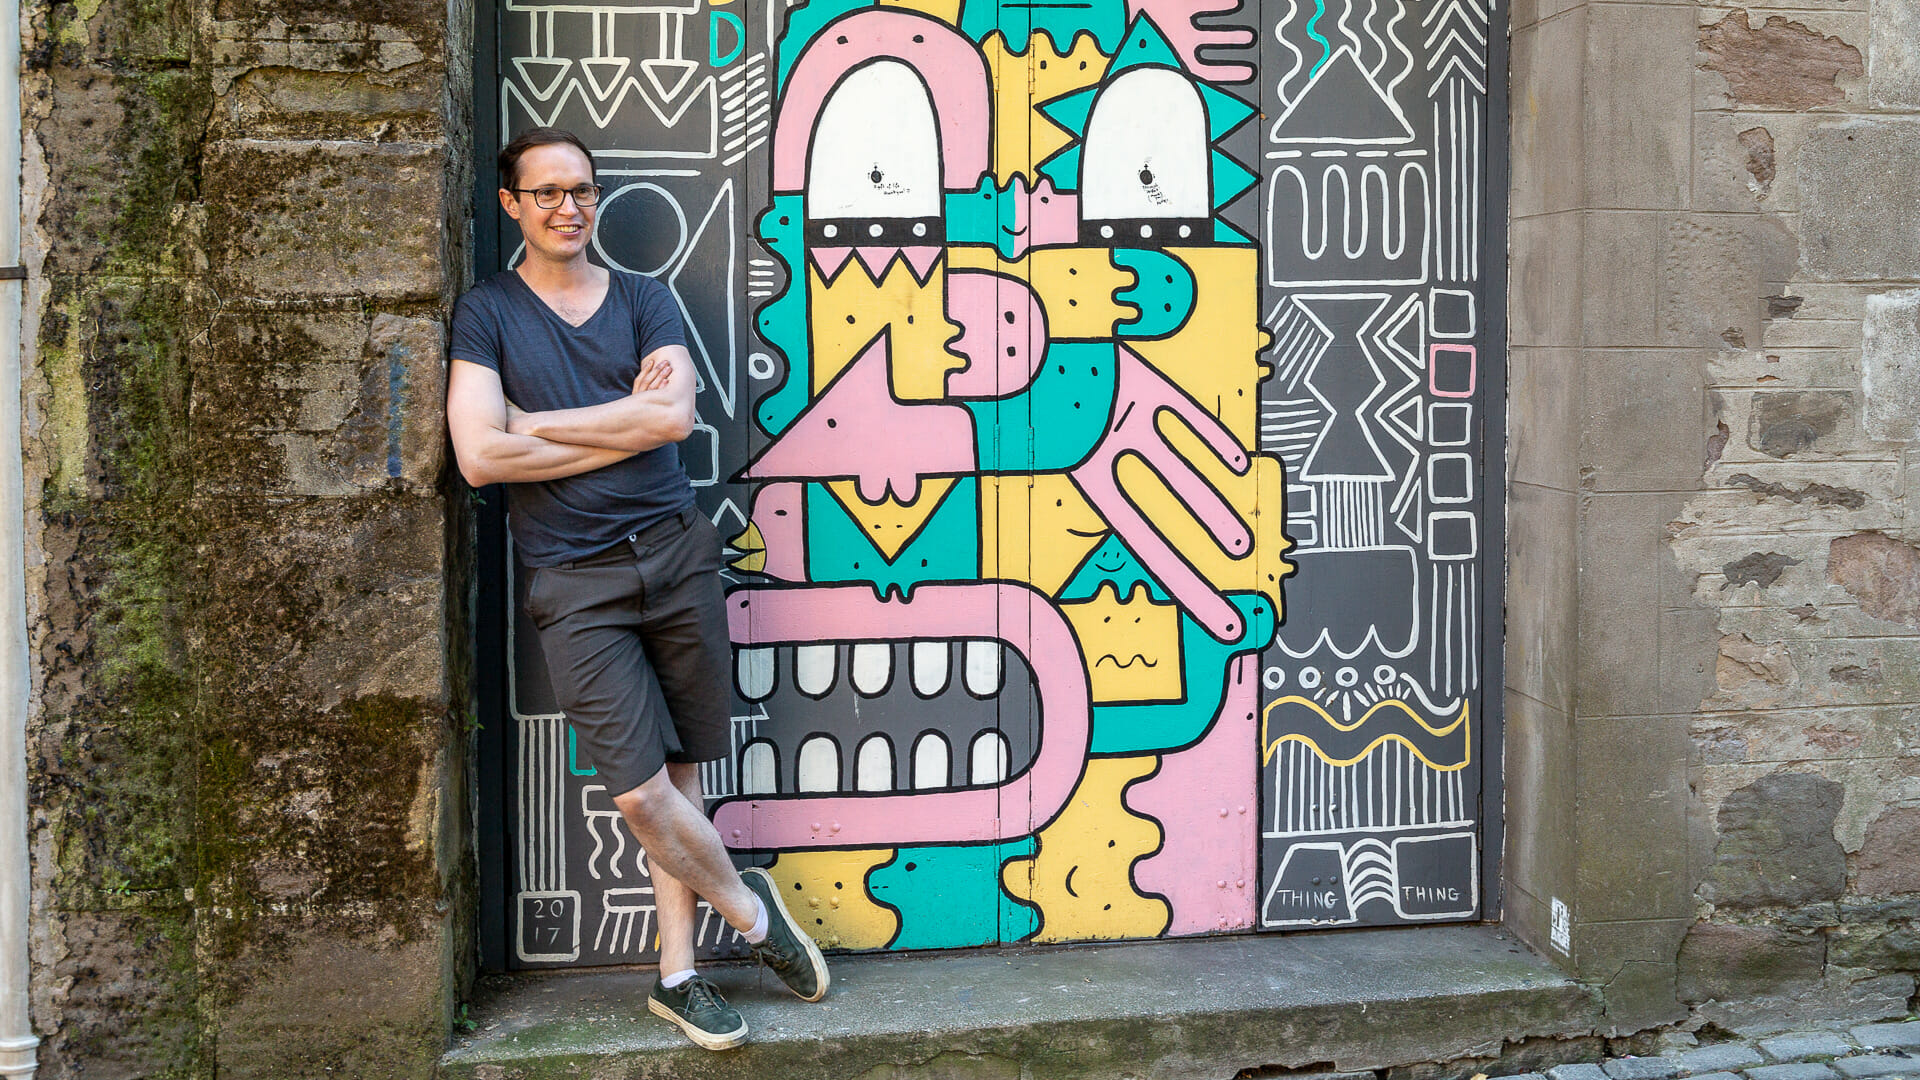 Russel Pepper, Organisator der Street Art Aktion in Dundee